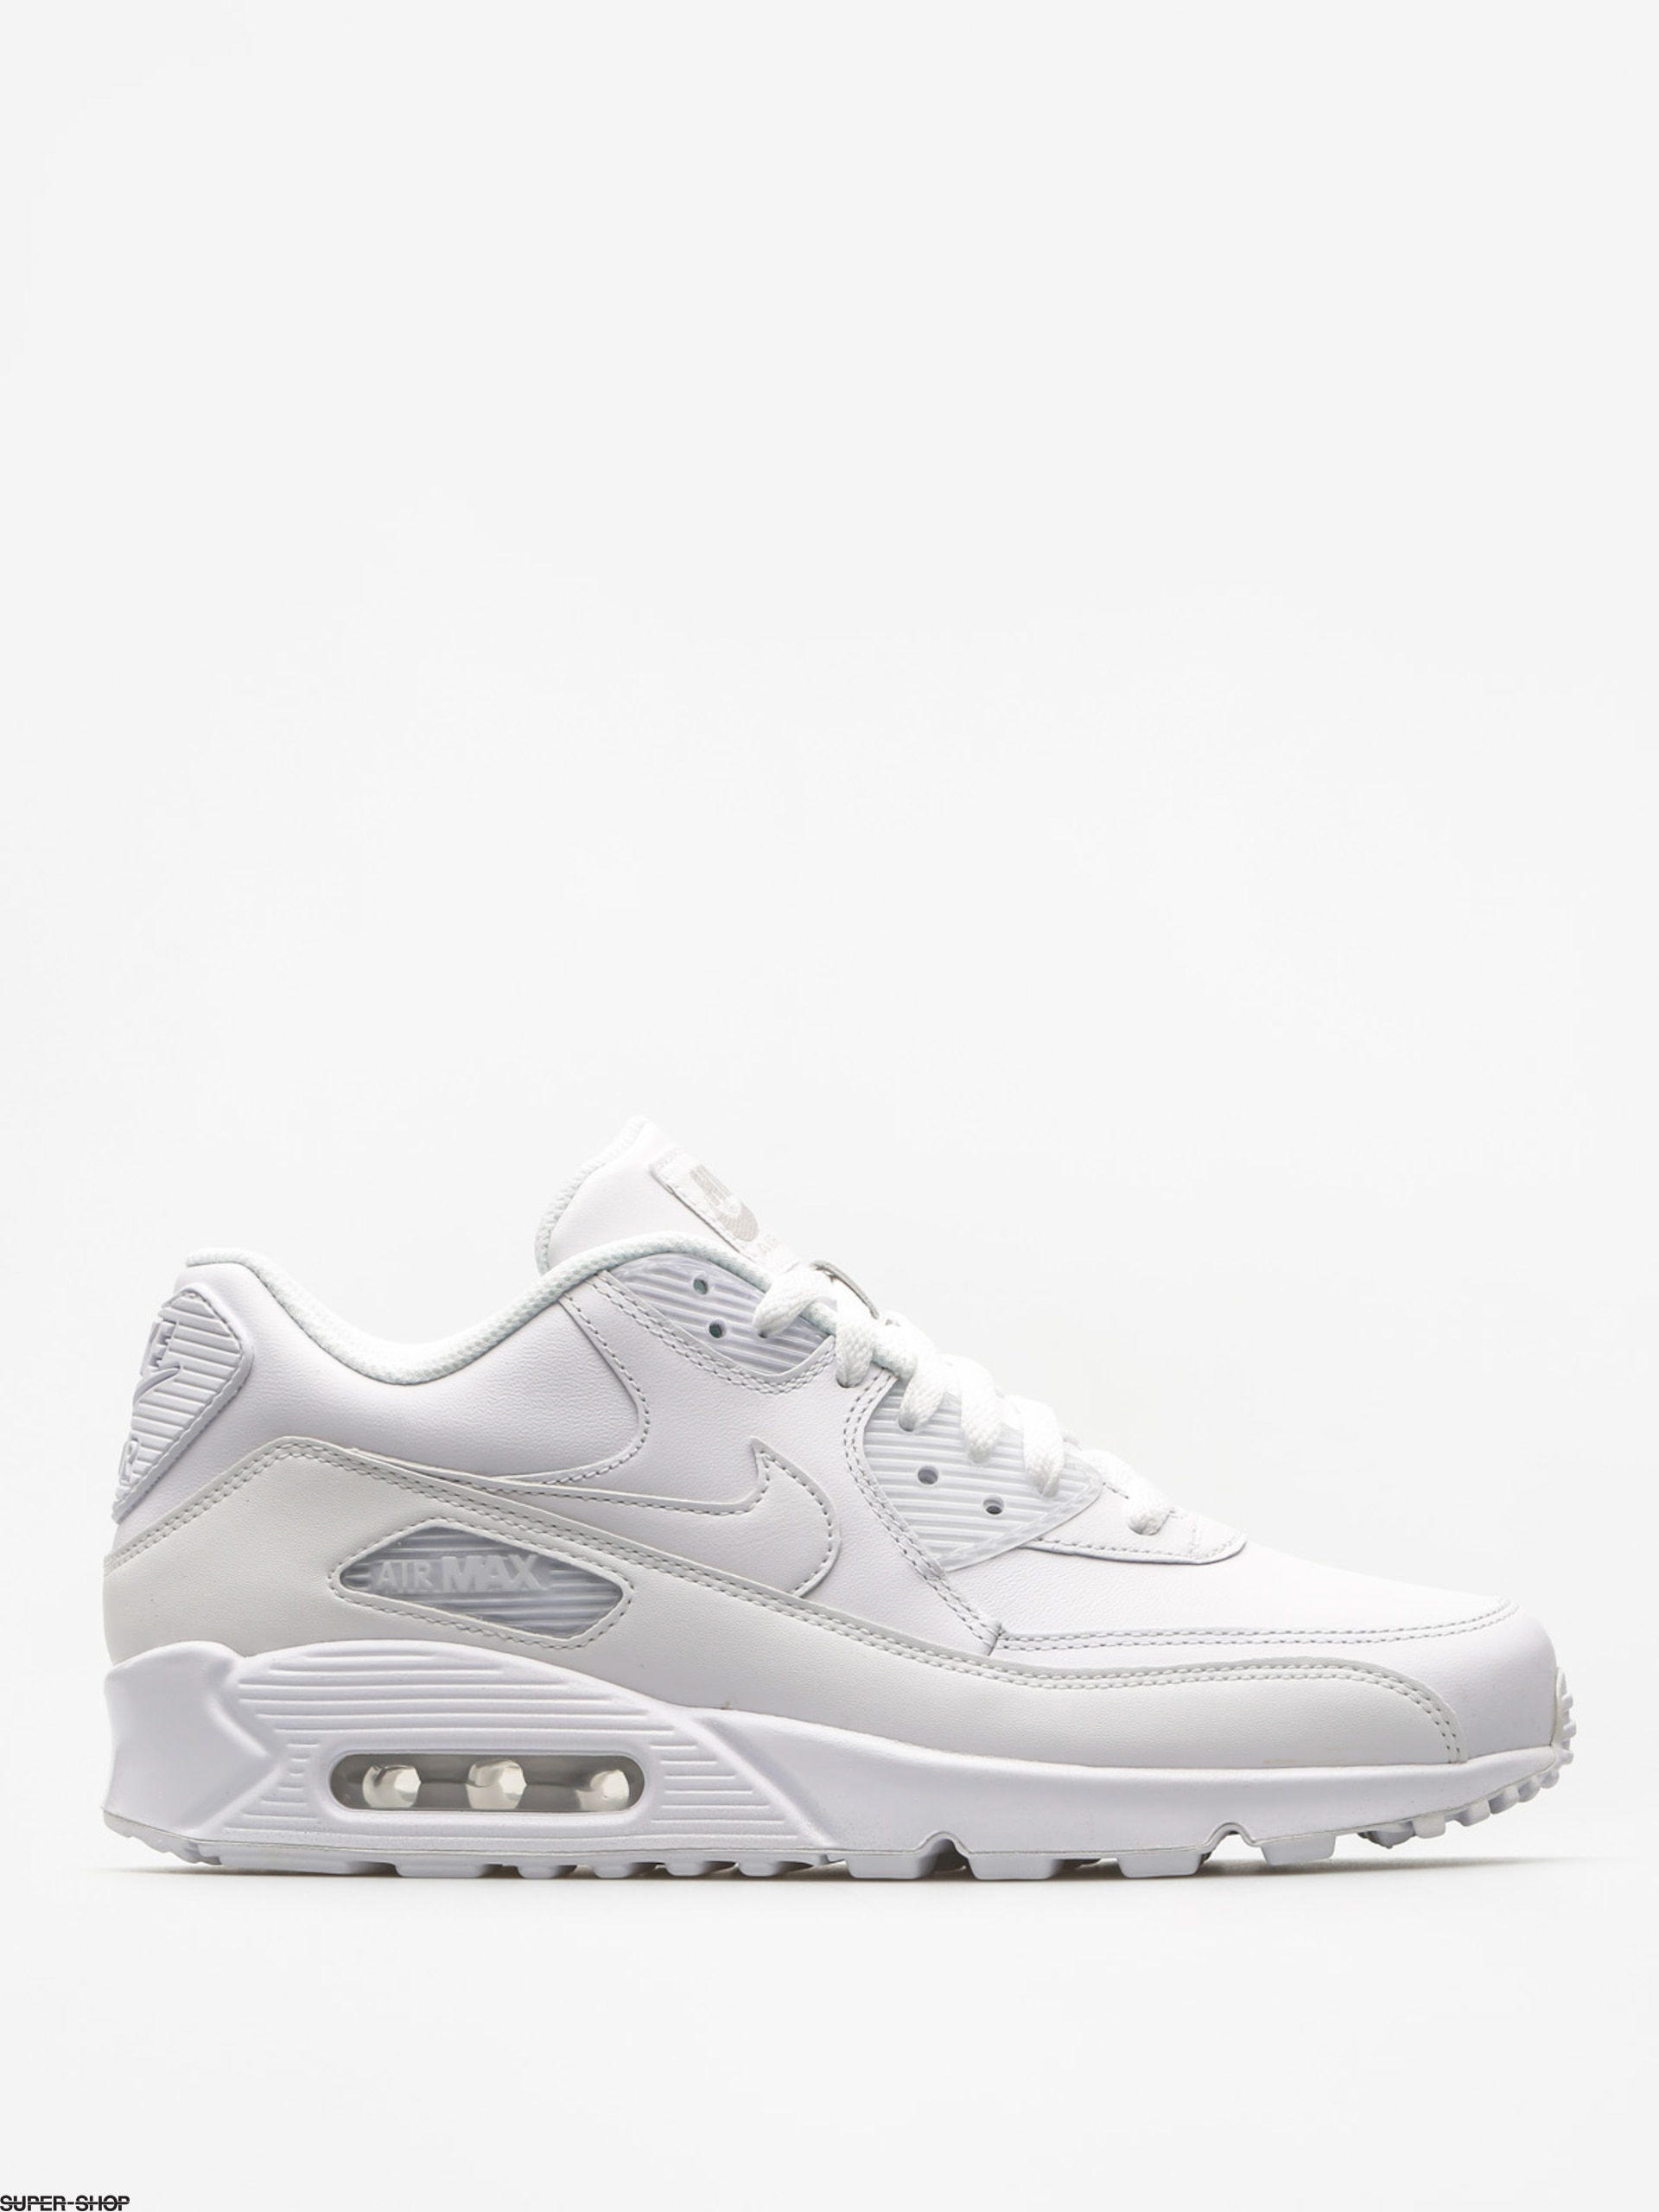 White Air Max 90 Shoes.